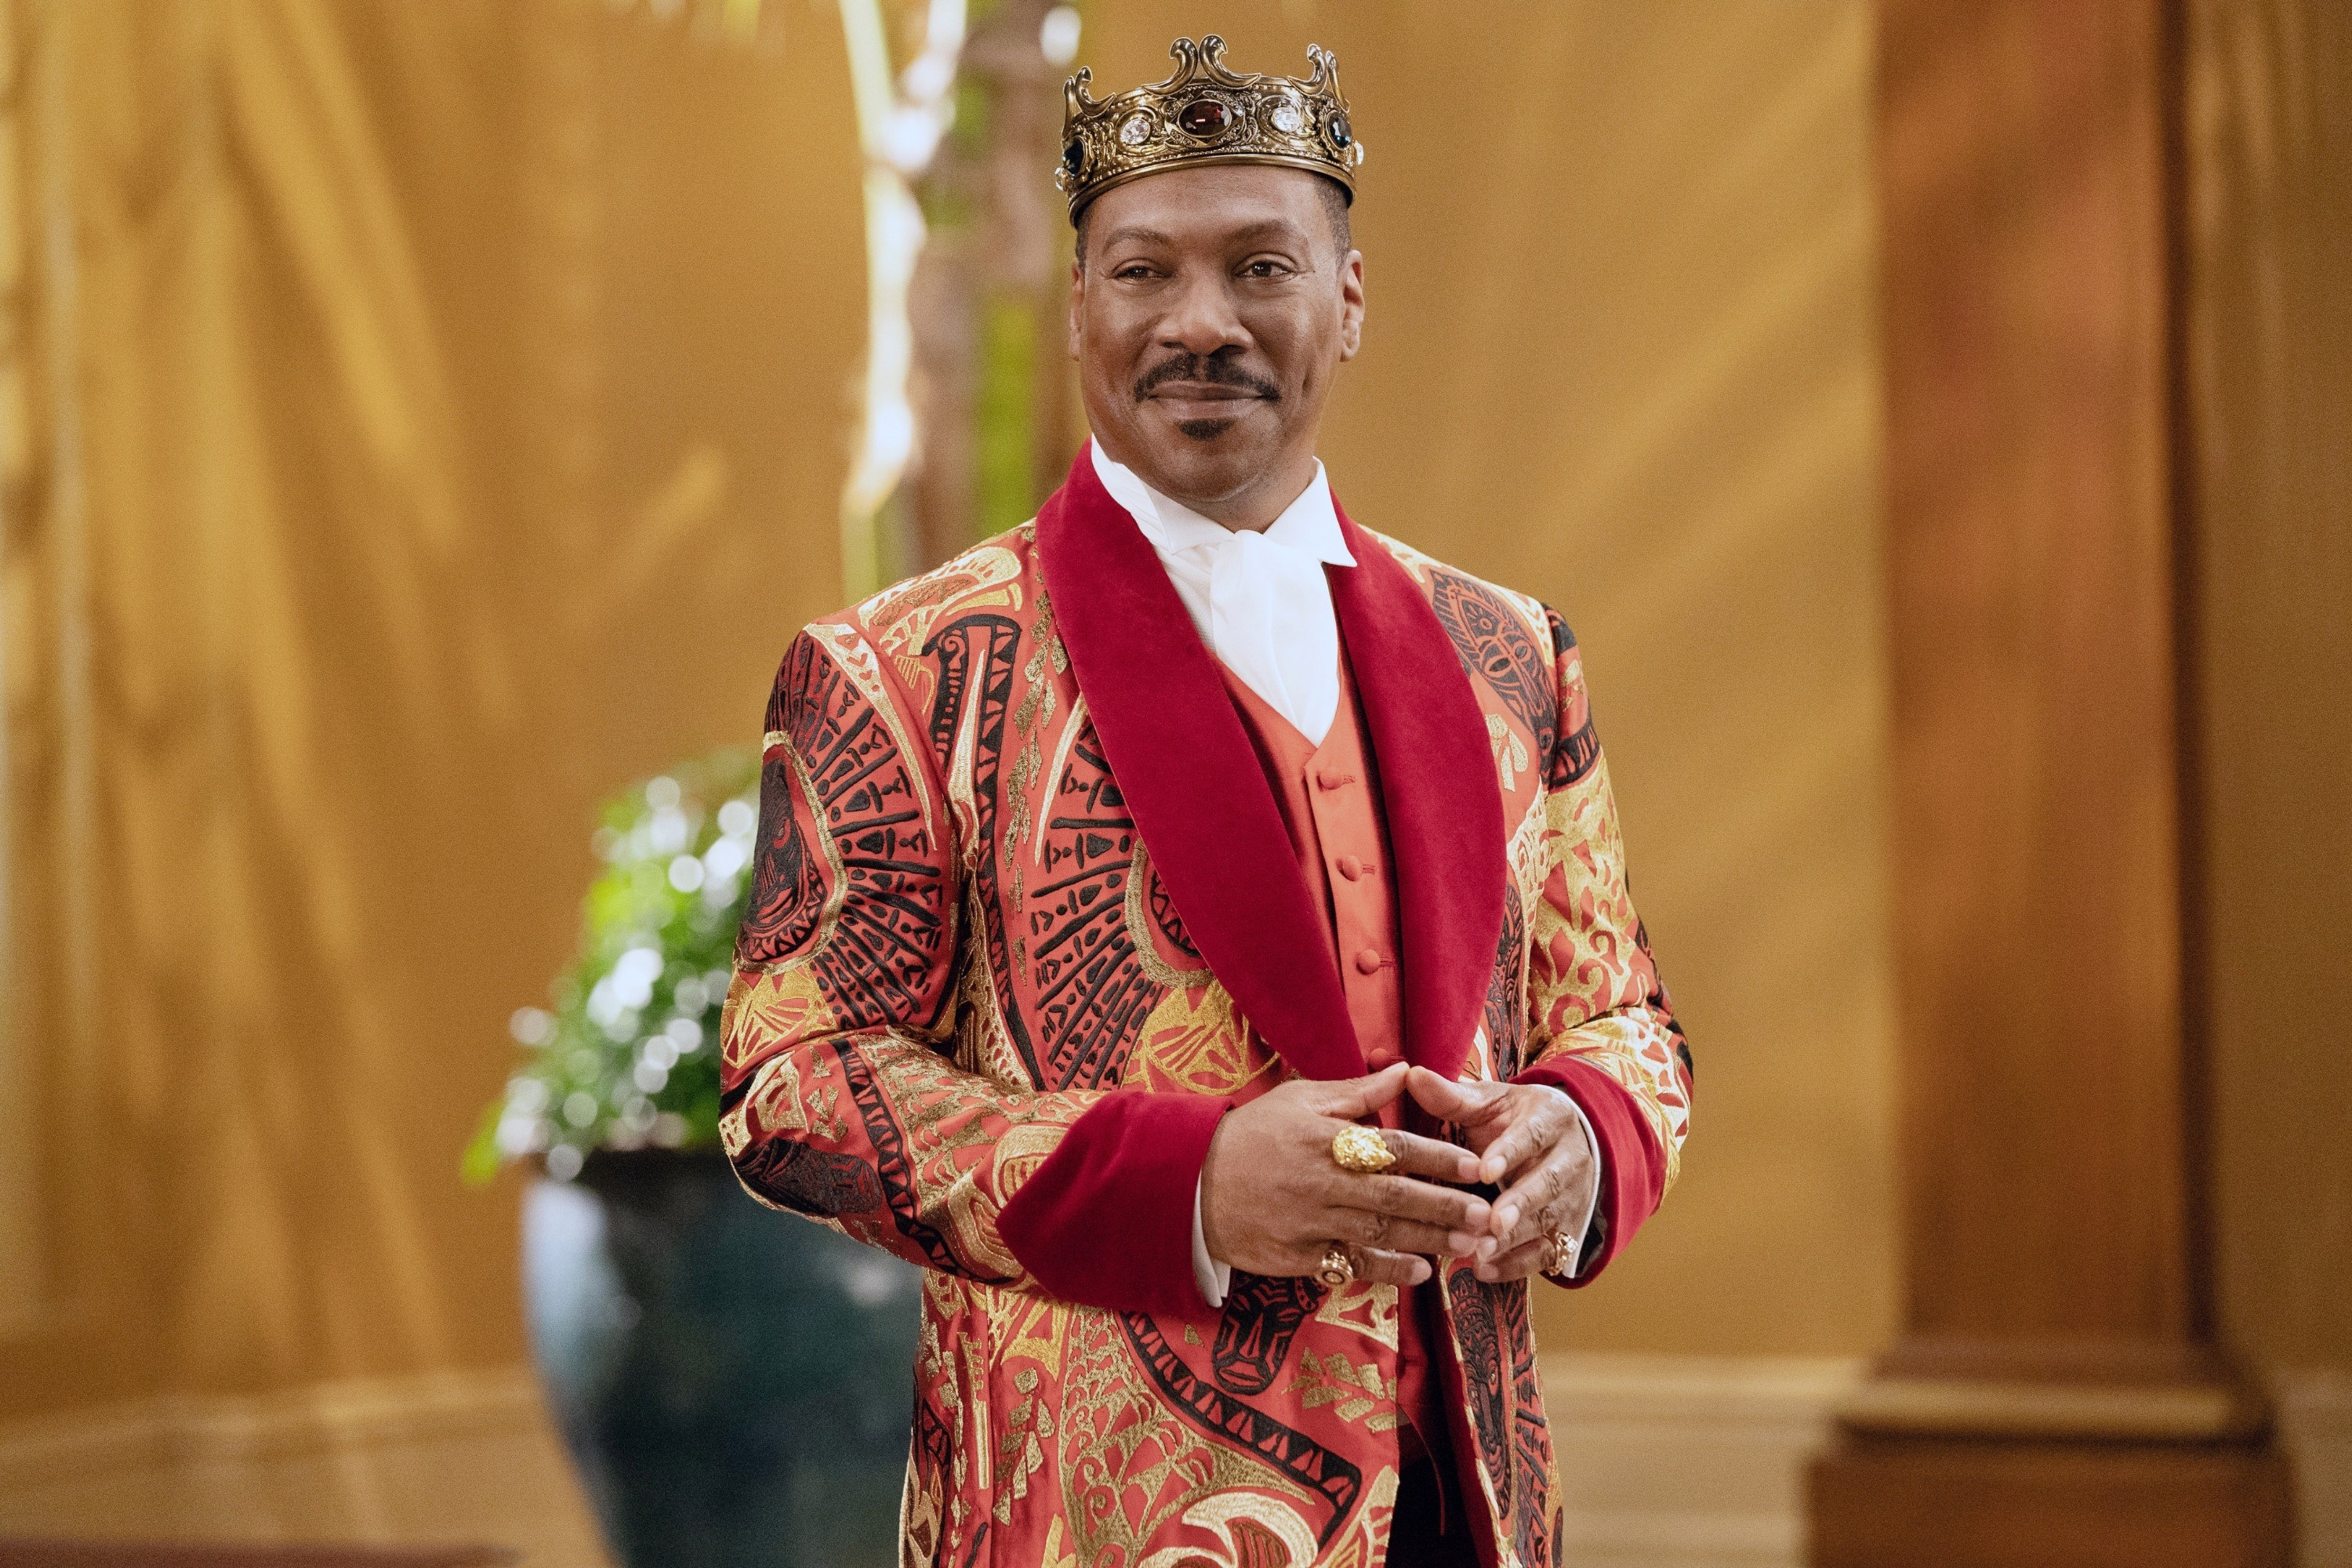 Eddie Murphy dressed in royal garb and a crown in Coming 2 America